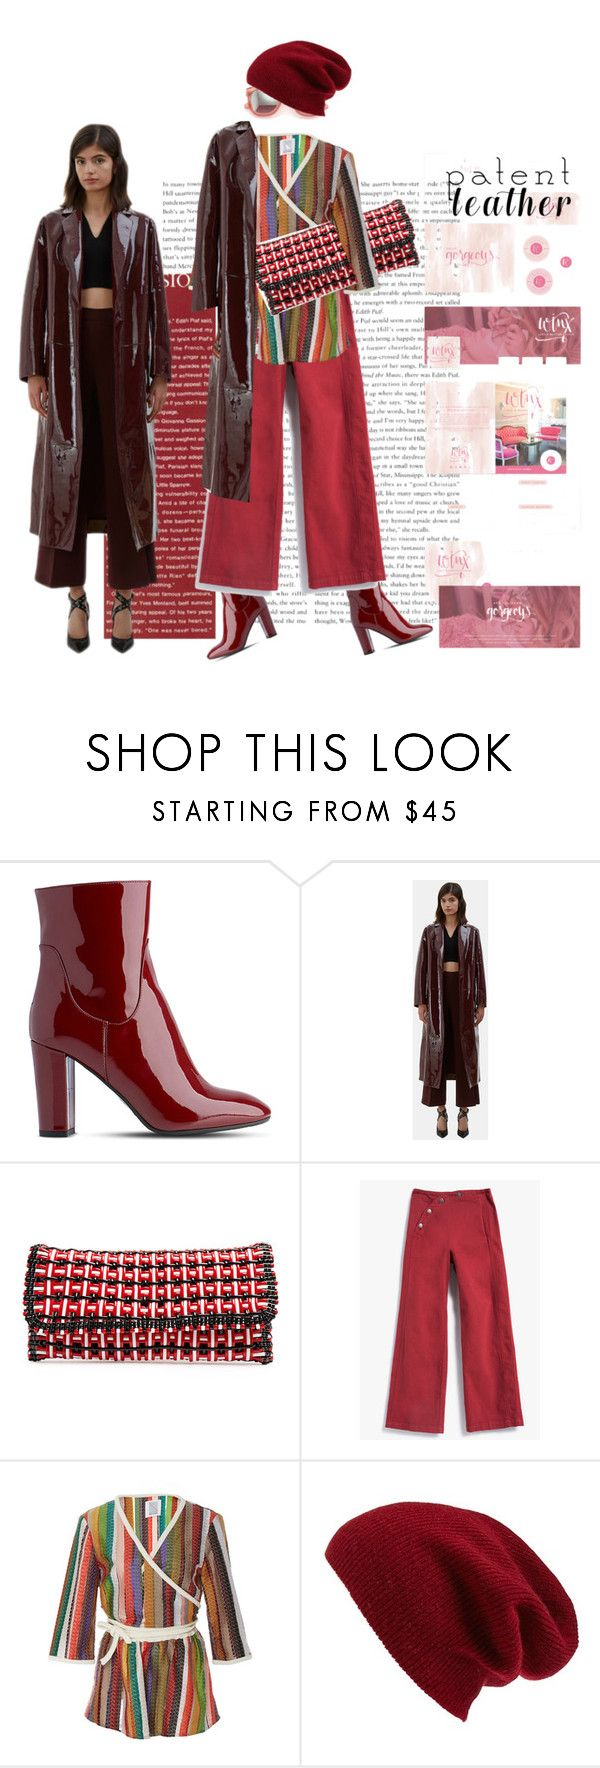 """""""City Slicker"""" by peeweevaaz ❤ liked on Polyvore featuring L.K.Bennett, CC, Balenciaga, Rachel Comey, Rosie Assoulin, Halogen, outfit, patentleather, polyvoreeditorial and polyvorefashion"""